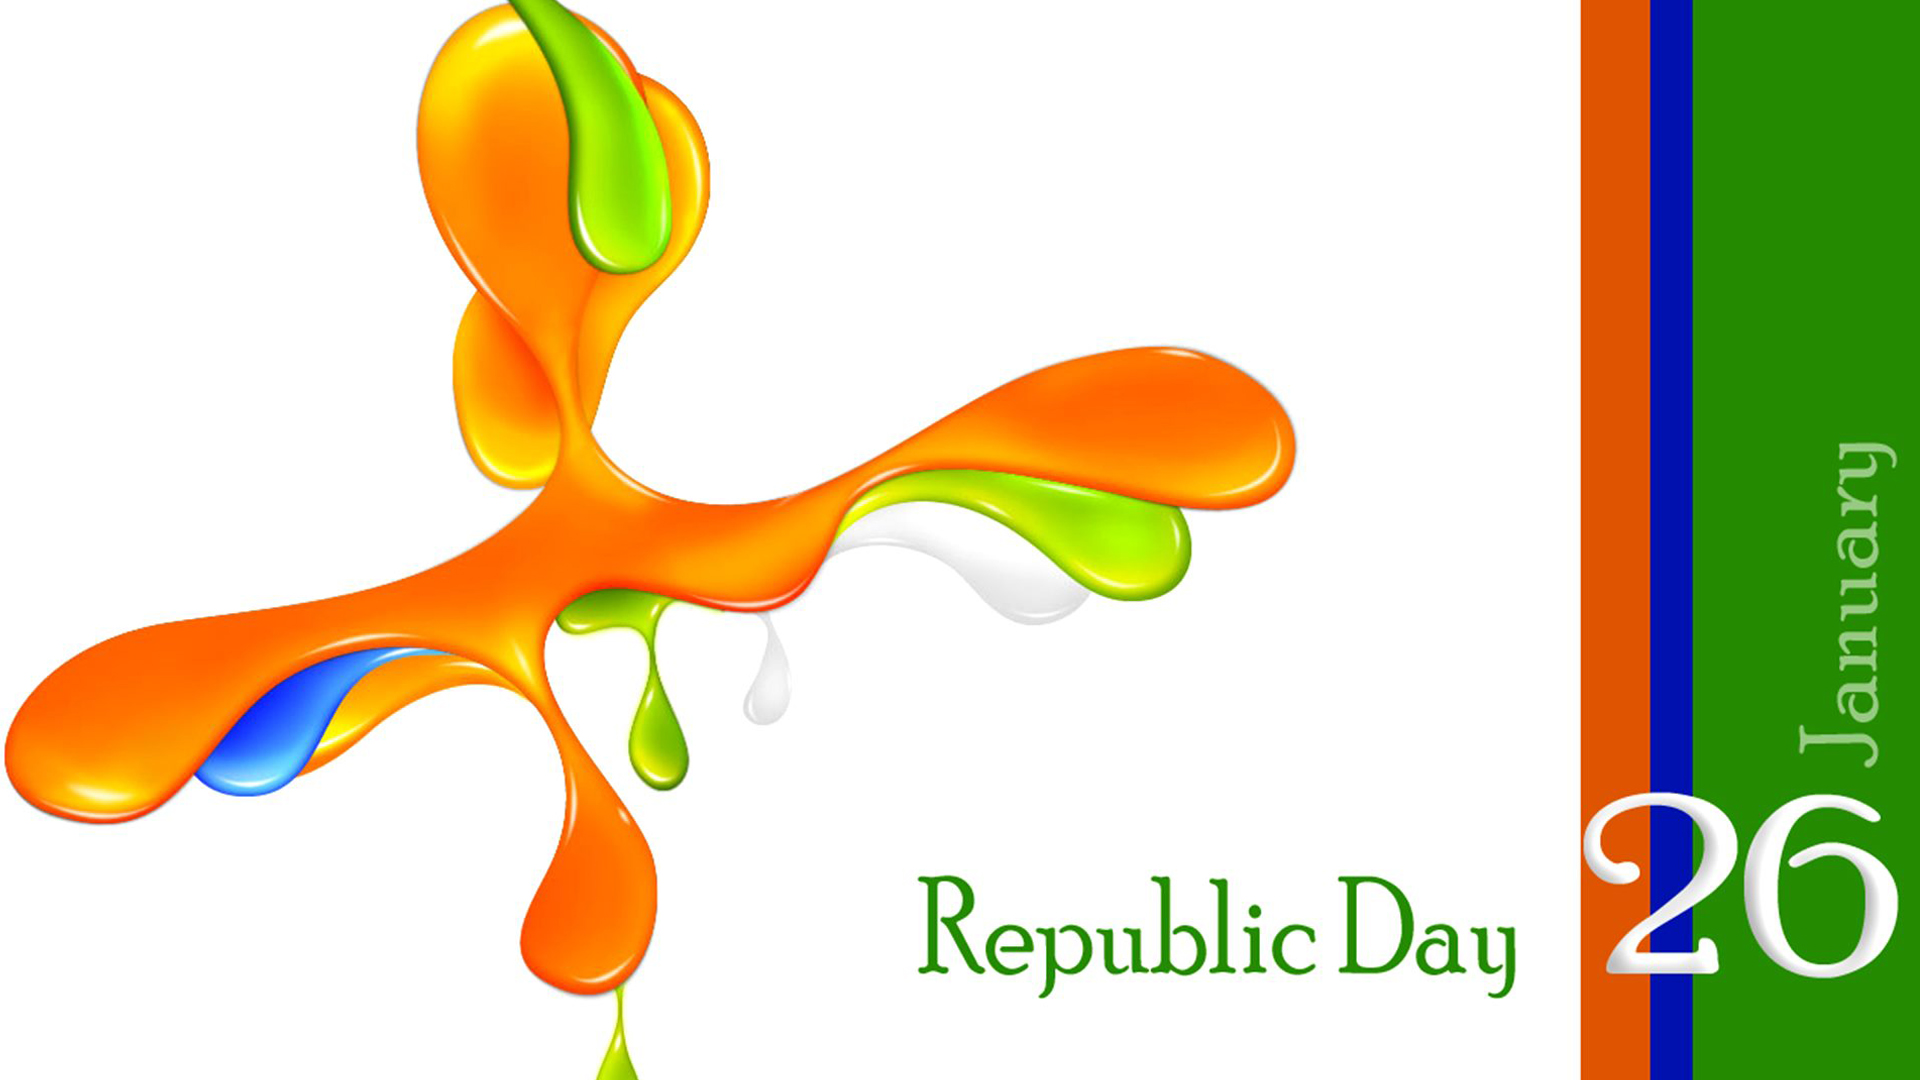 Country Flags With High Quality Photo Of Indian Flag Or Tiranga For